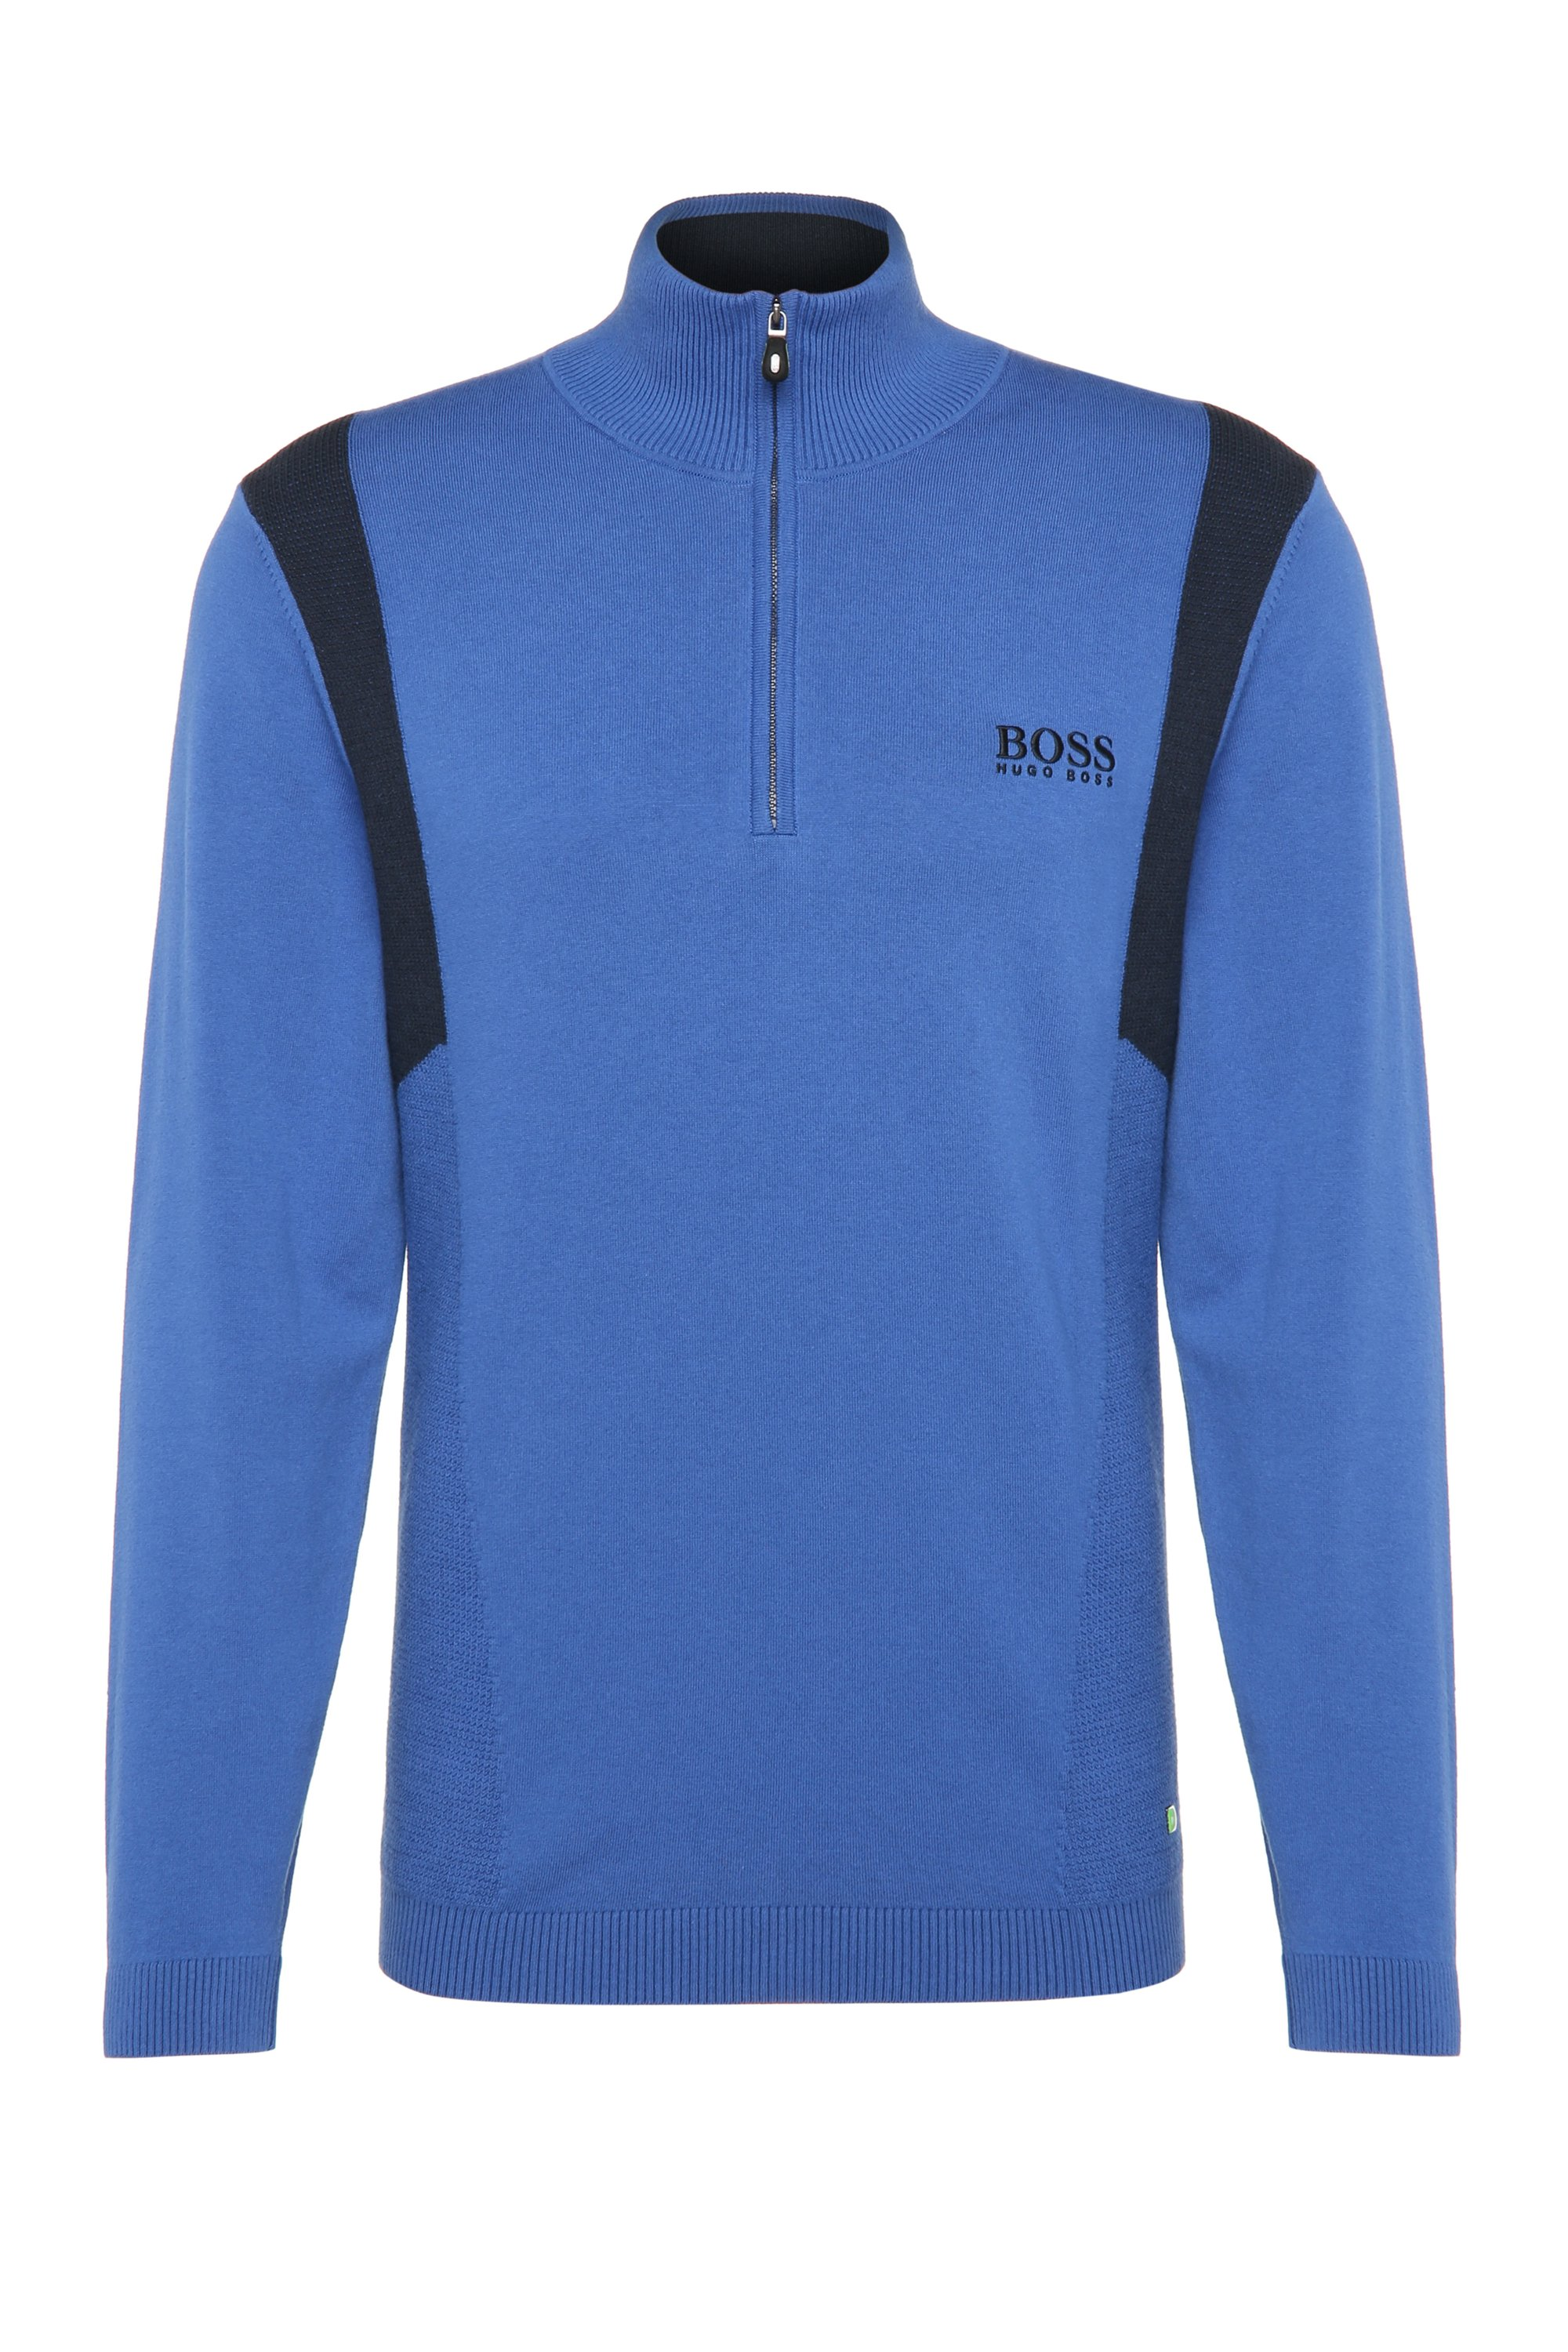 Water-Repellent Stretch Cotton Sweater | Zelichior Pro S17, Open Blue